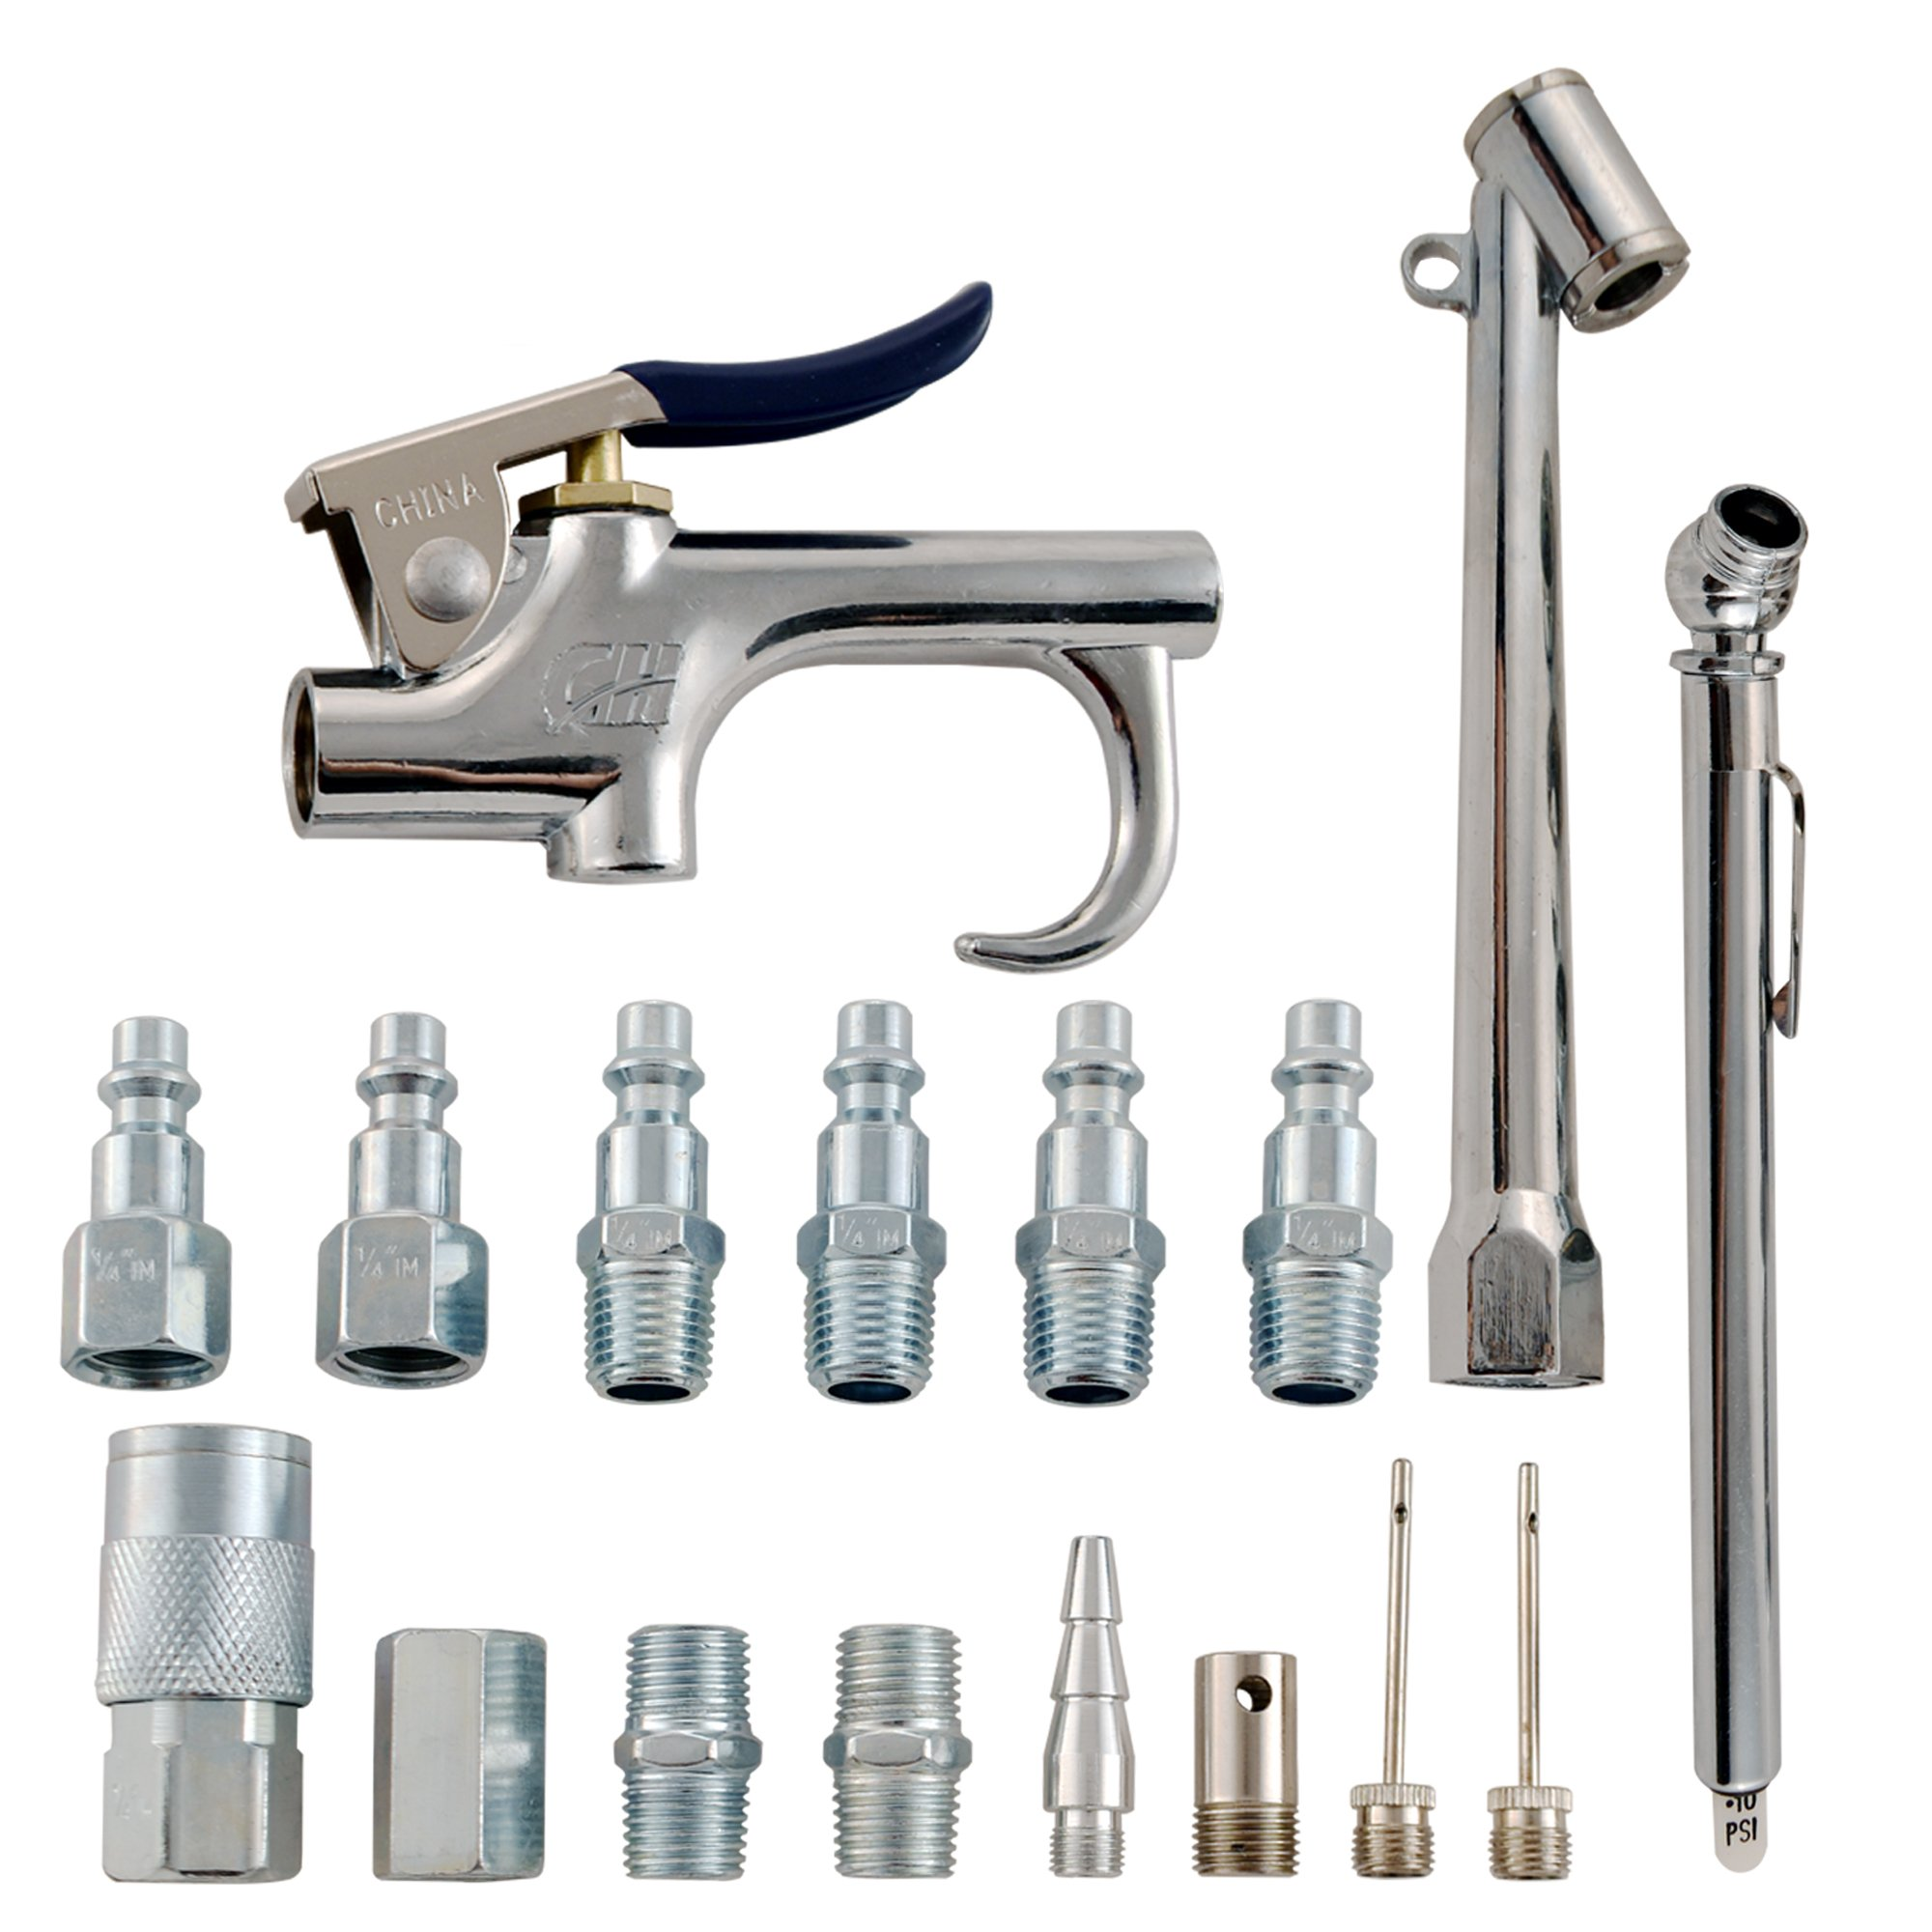 Accessory Kit, 17 Piece Compressor Inflation Kit, with Blow Gun, Air Chucks, & Inflation Needles (Campbell Hausfeld MP284701AV)